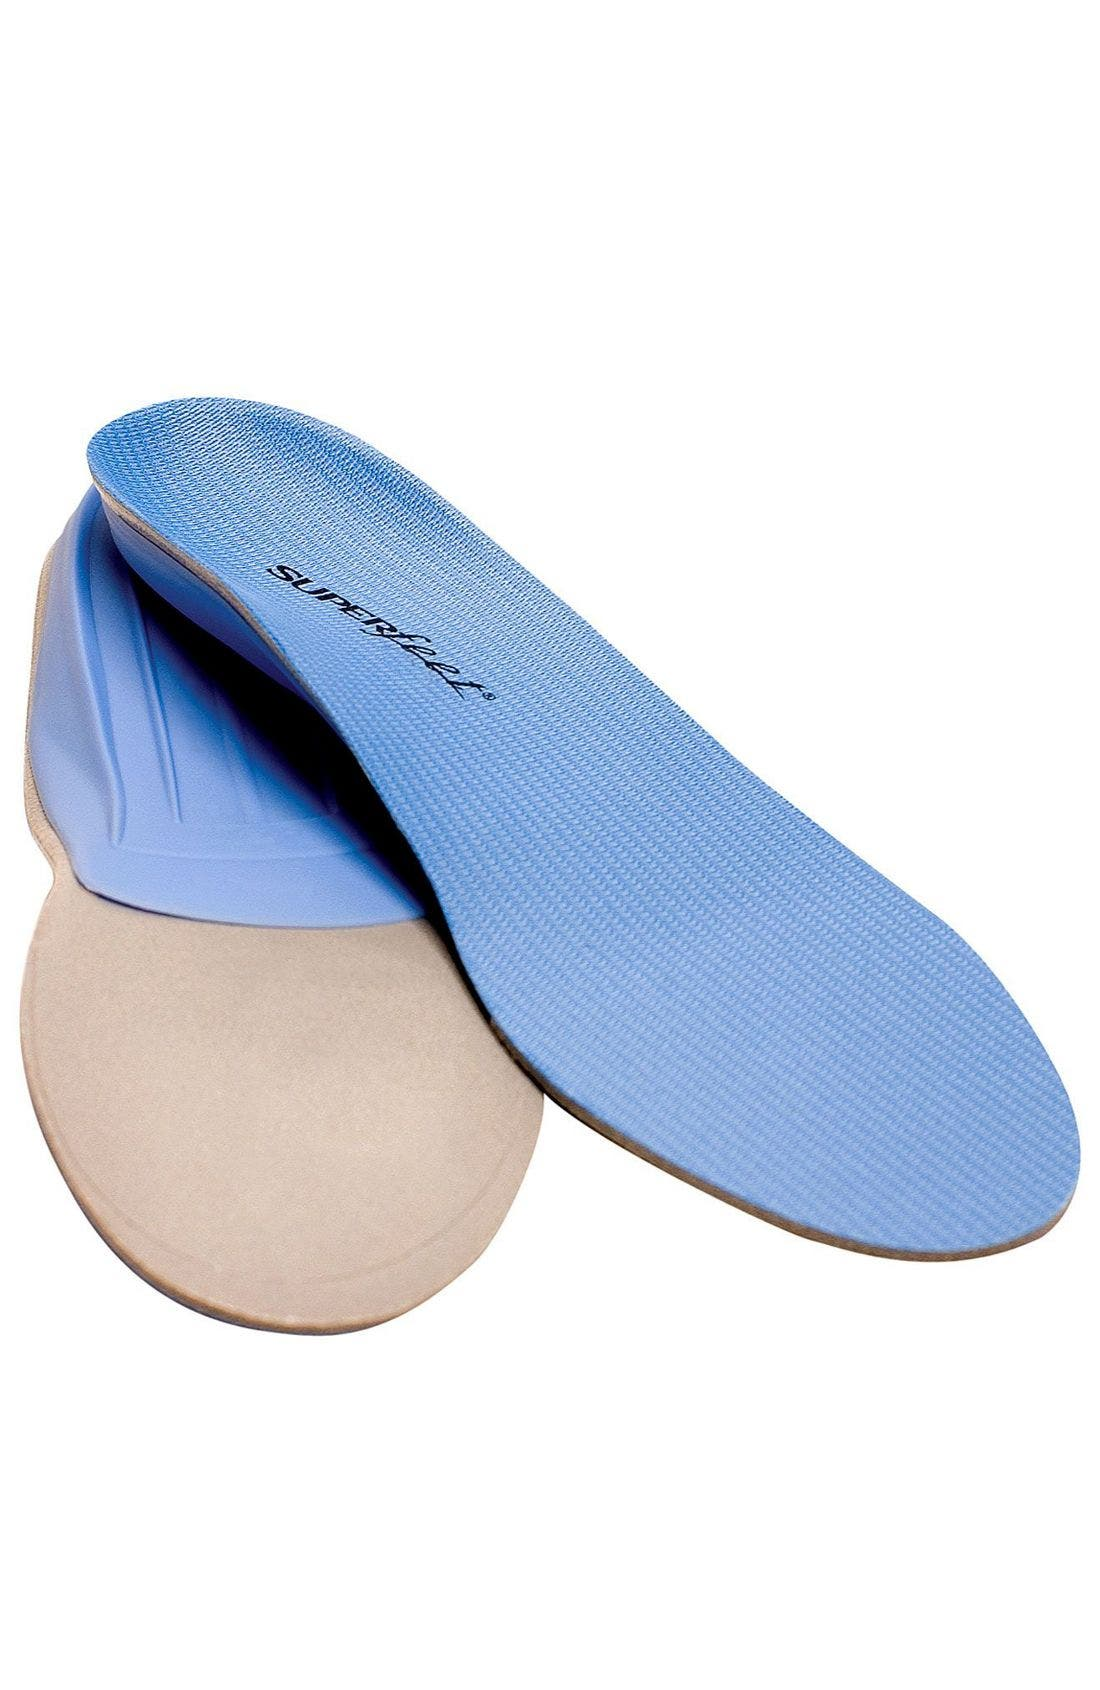 'Active Blue' Insoles,                             Main thumbnail 1, color,                             BLU